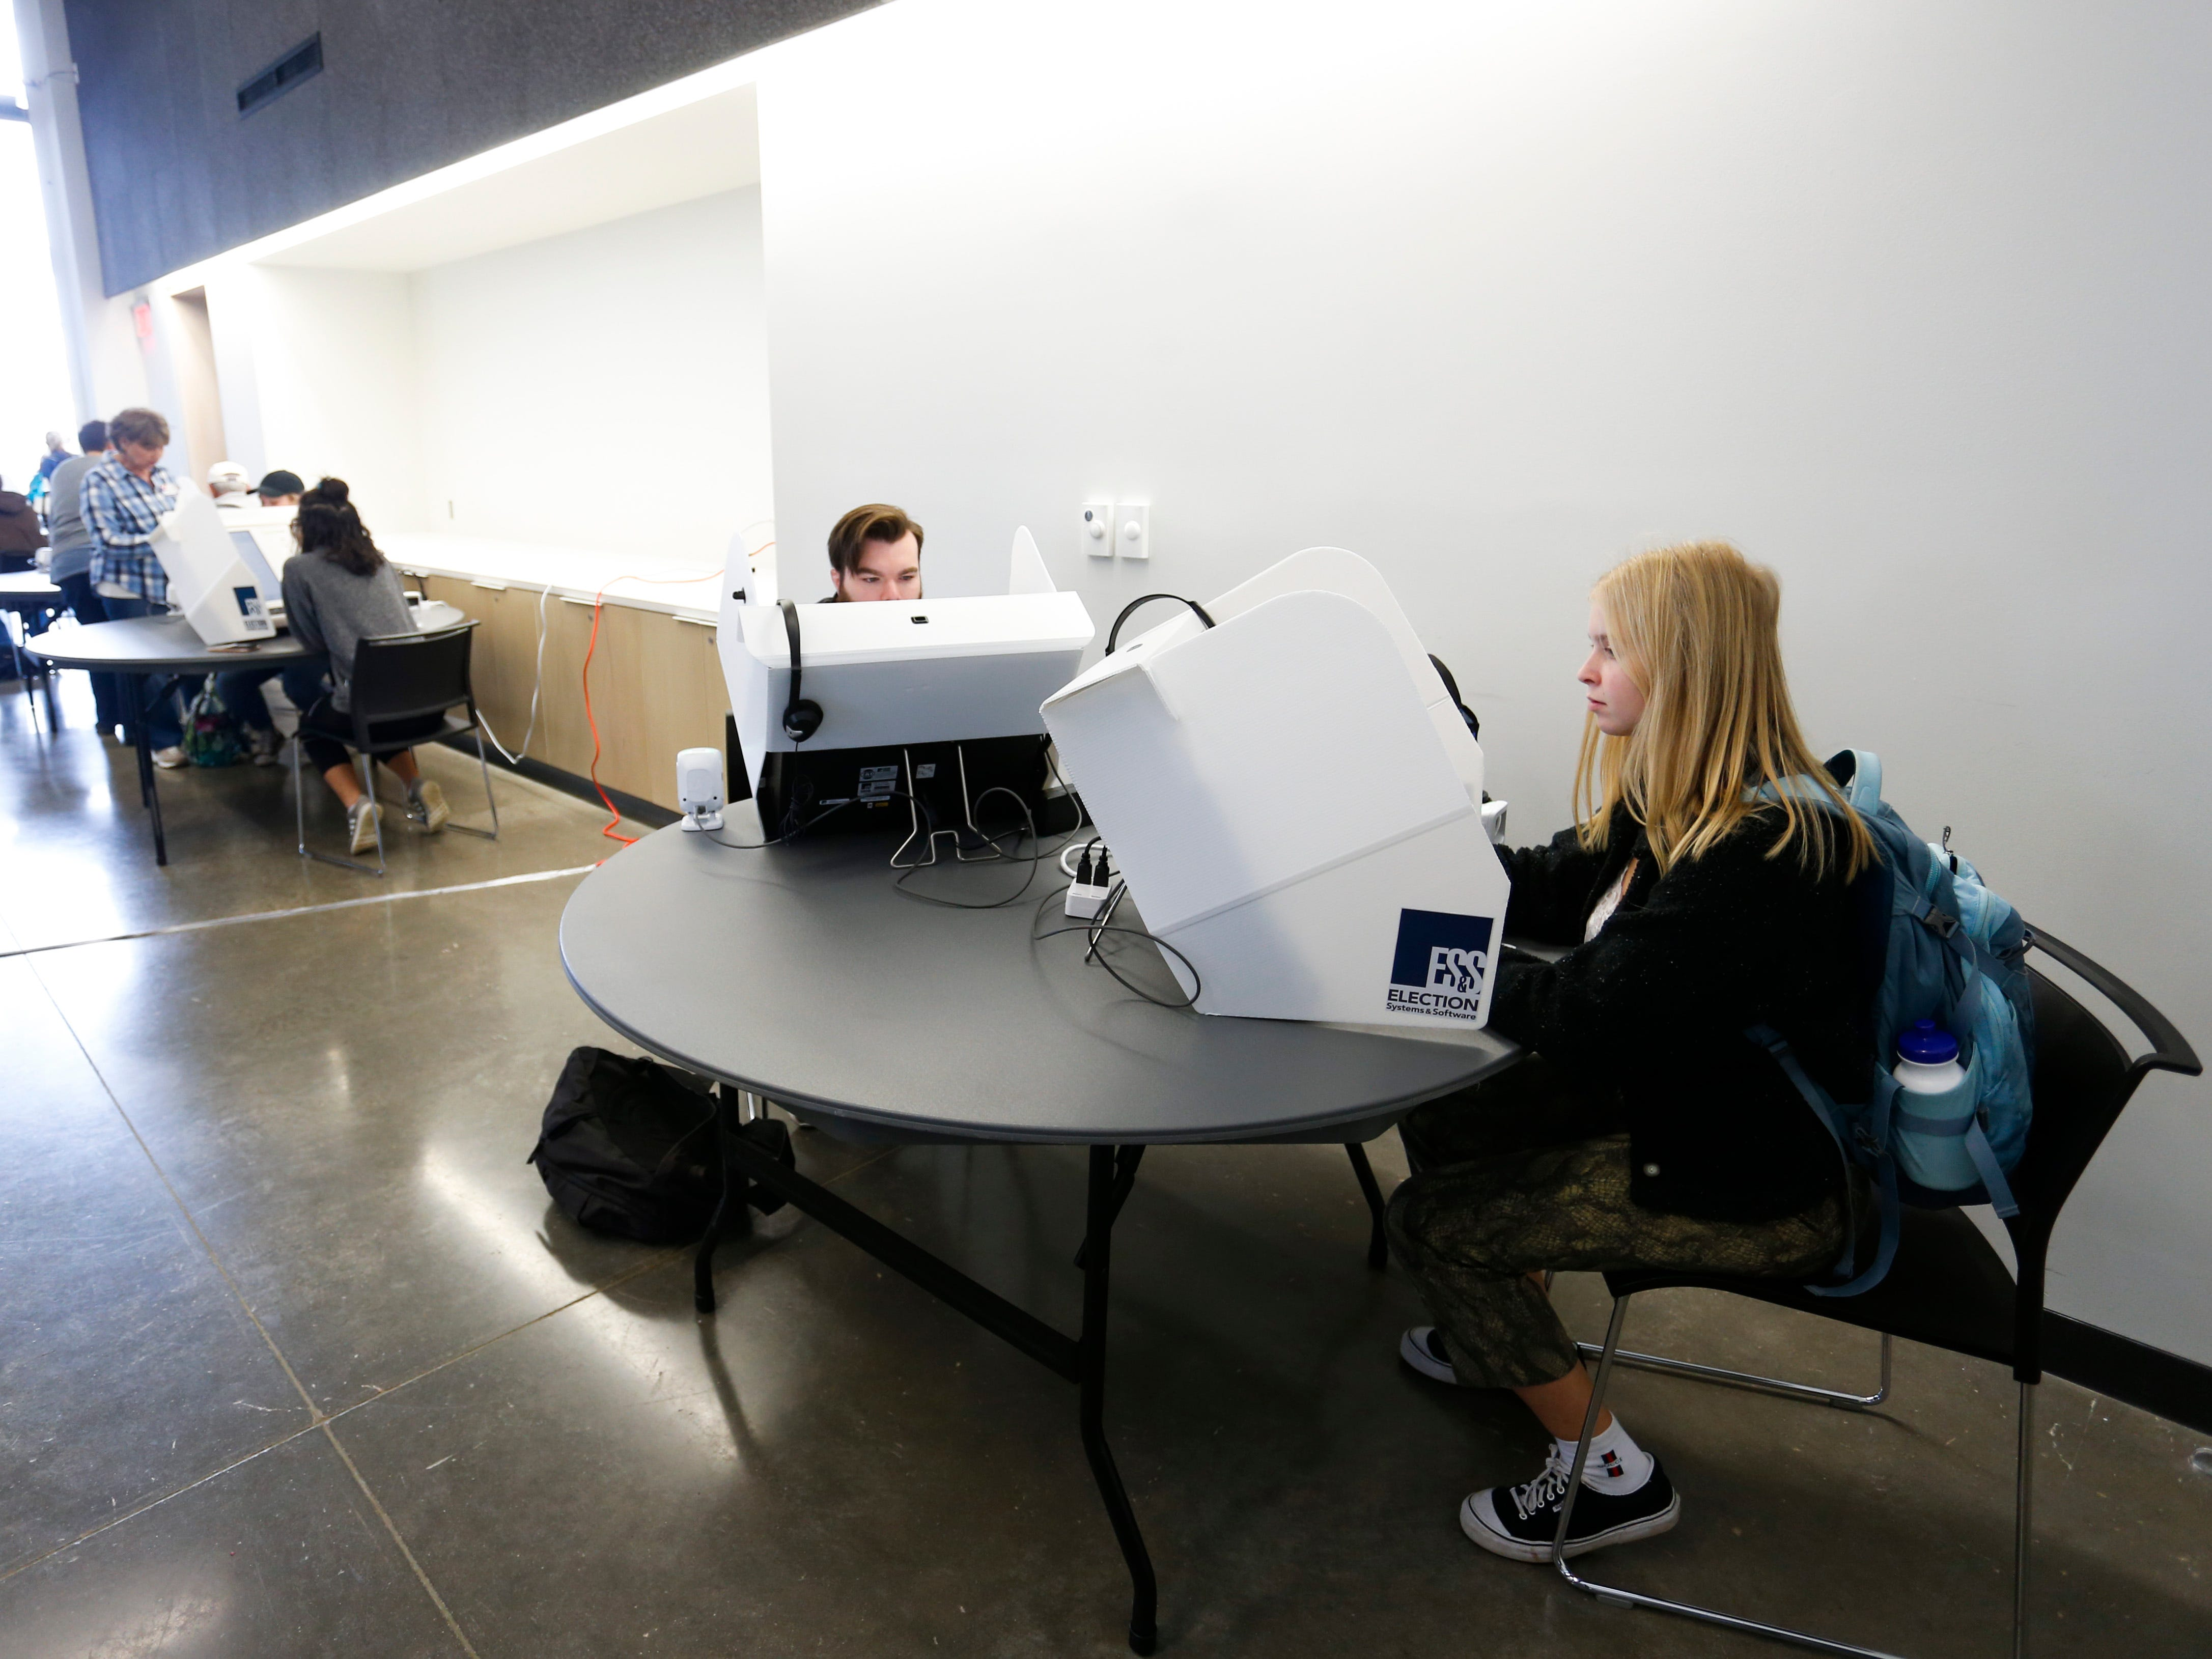 First time voter Kaylinn Cloffelter, 18, uses an electronic voting machine to cast her ballot at the Missouri State University Davis-Harrington Welcome Center on Tuesday, Nov. 6, 2018.